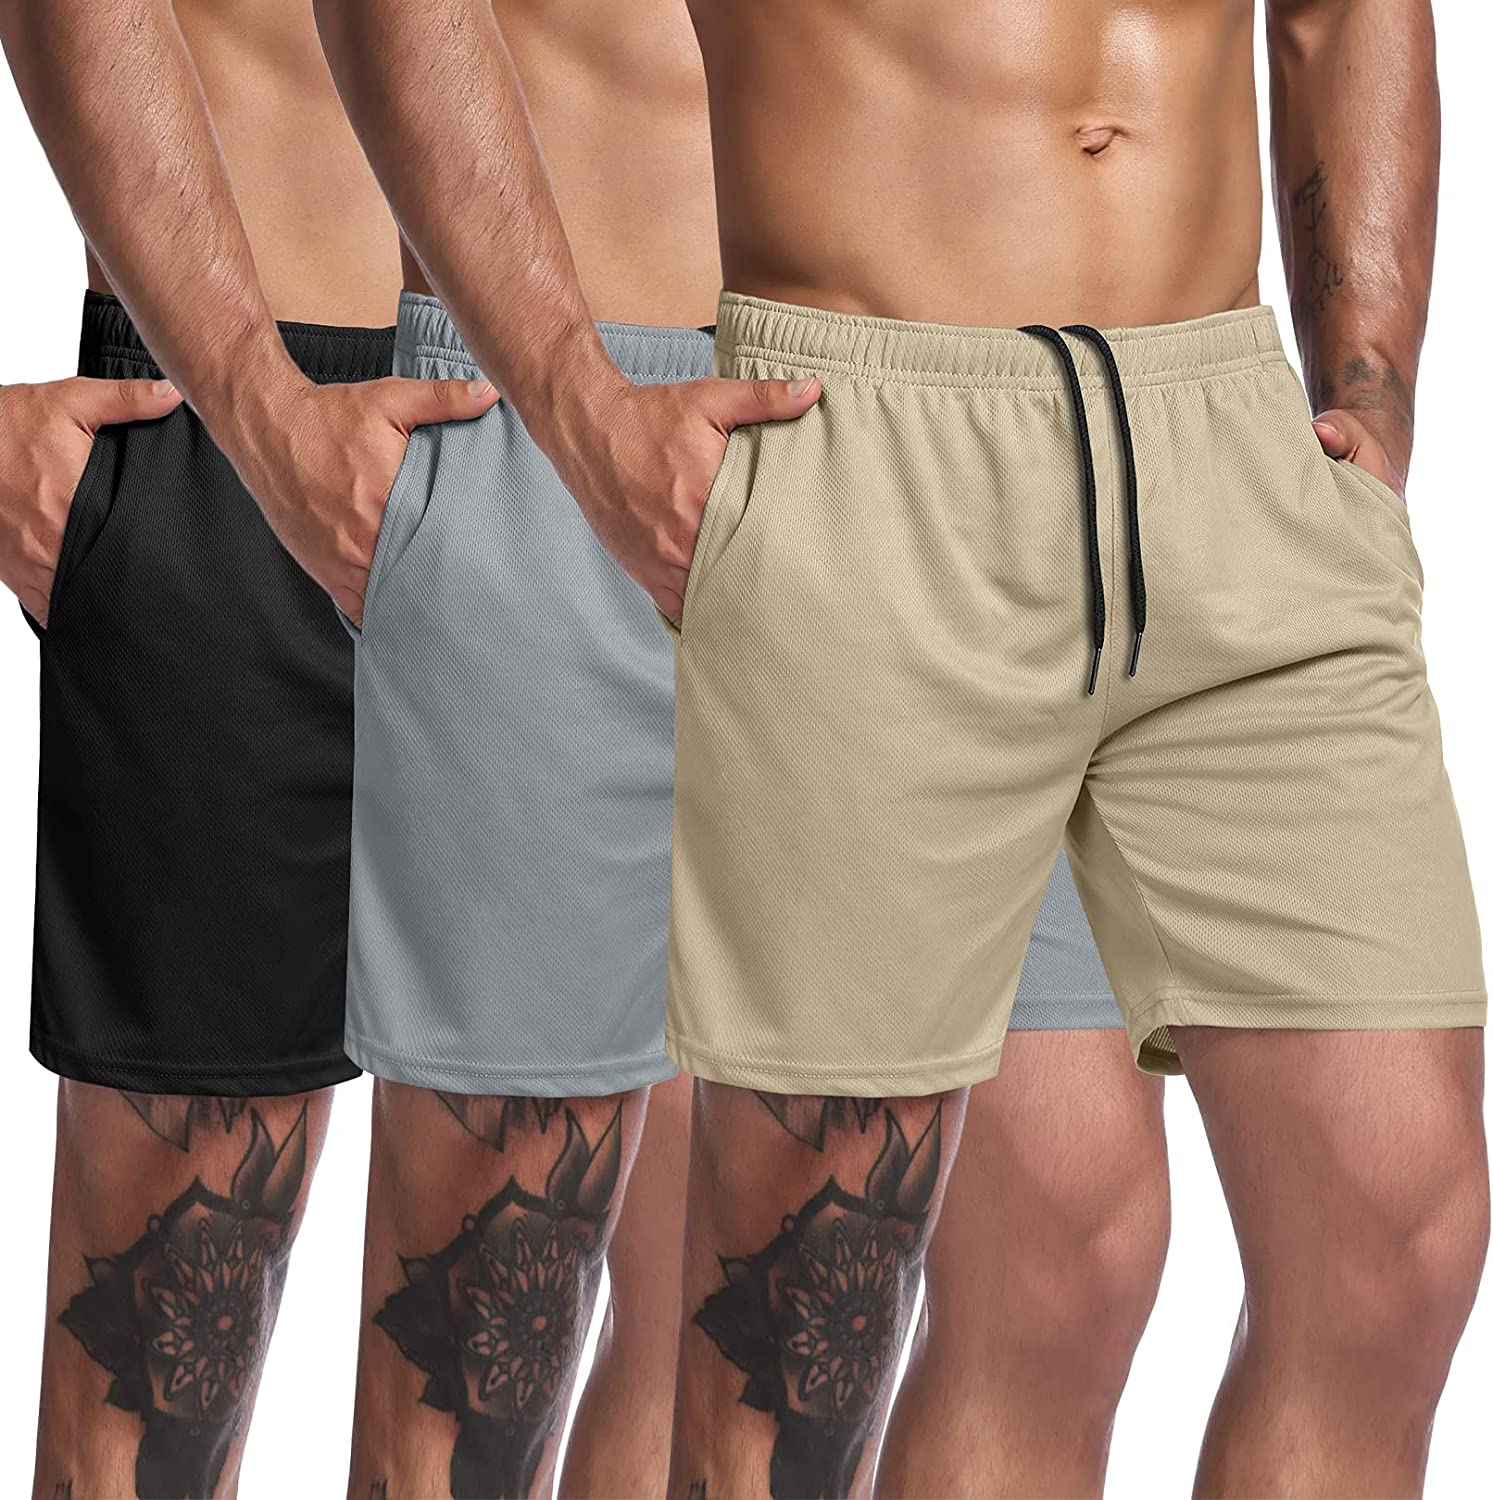 COOFANDY Atlanta Mall Men's 3 Pack Gym Mesh Workout Shorts New mail order Weightlifting Squa